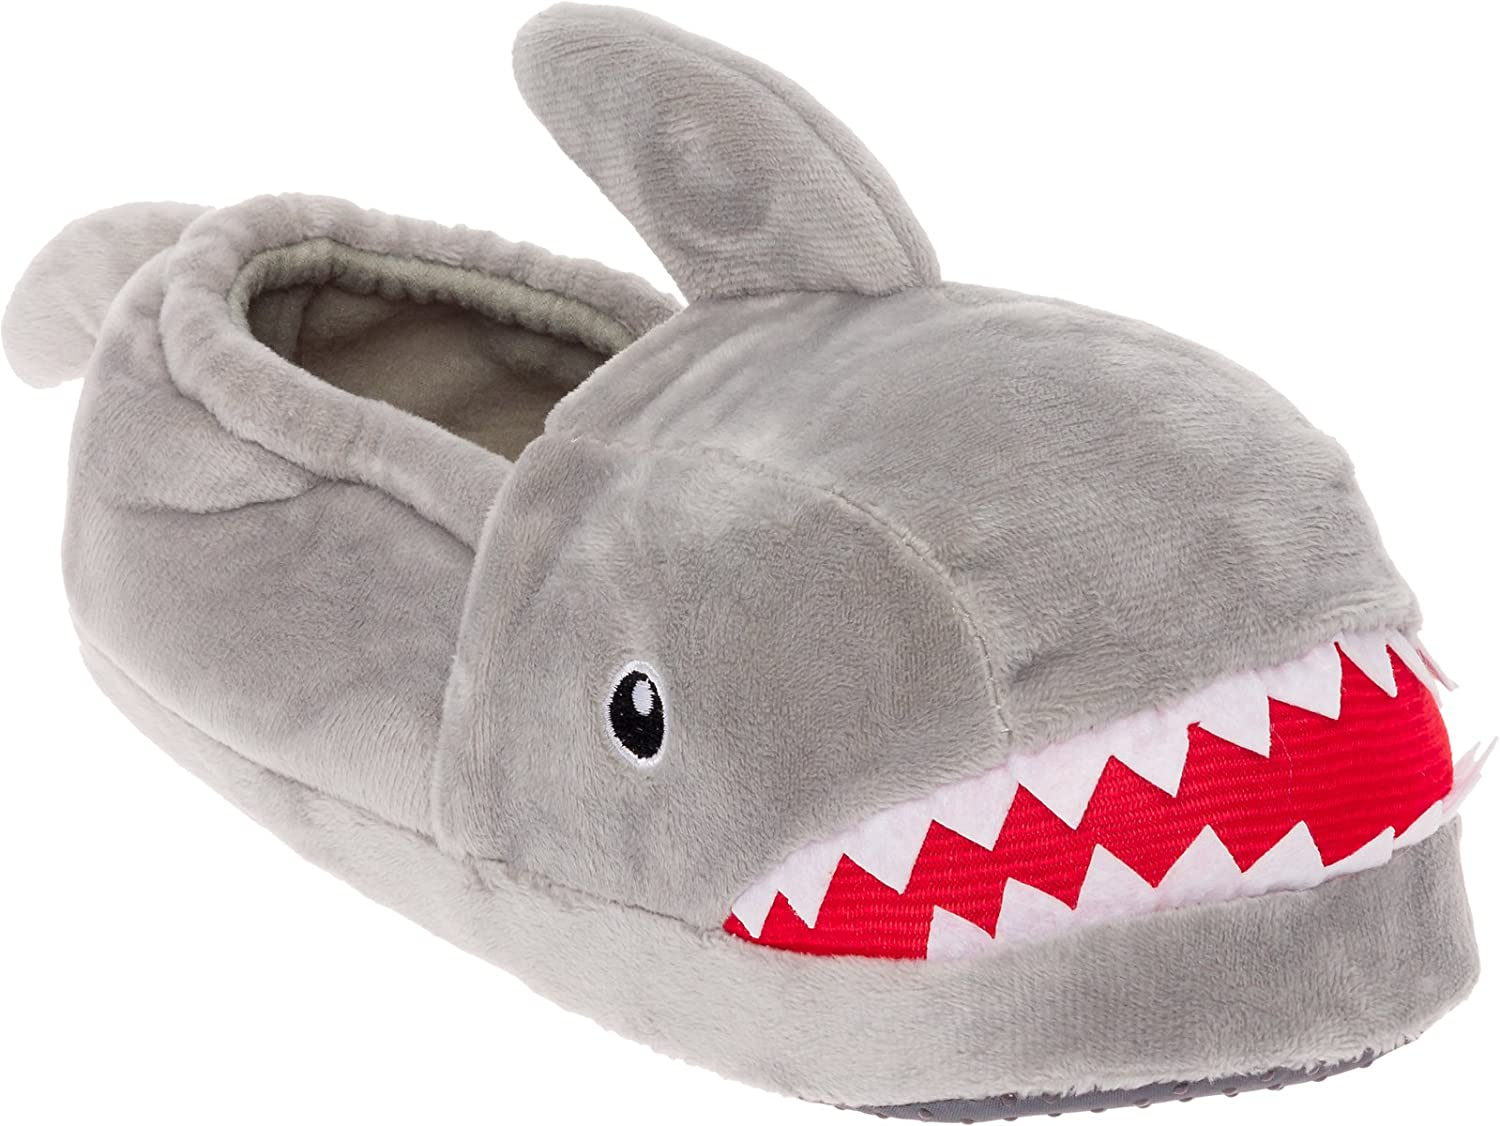 Silver Lilly Shark Plush Slippers - Novelty Animal Slippers w Foam Support Silver